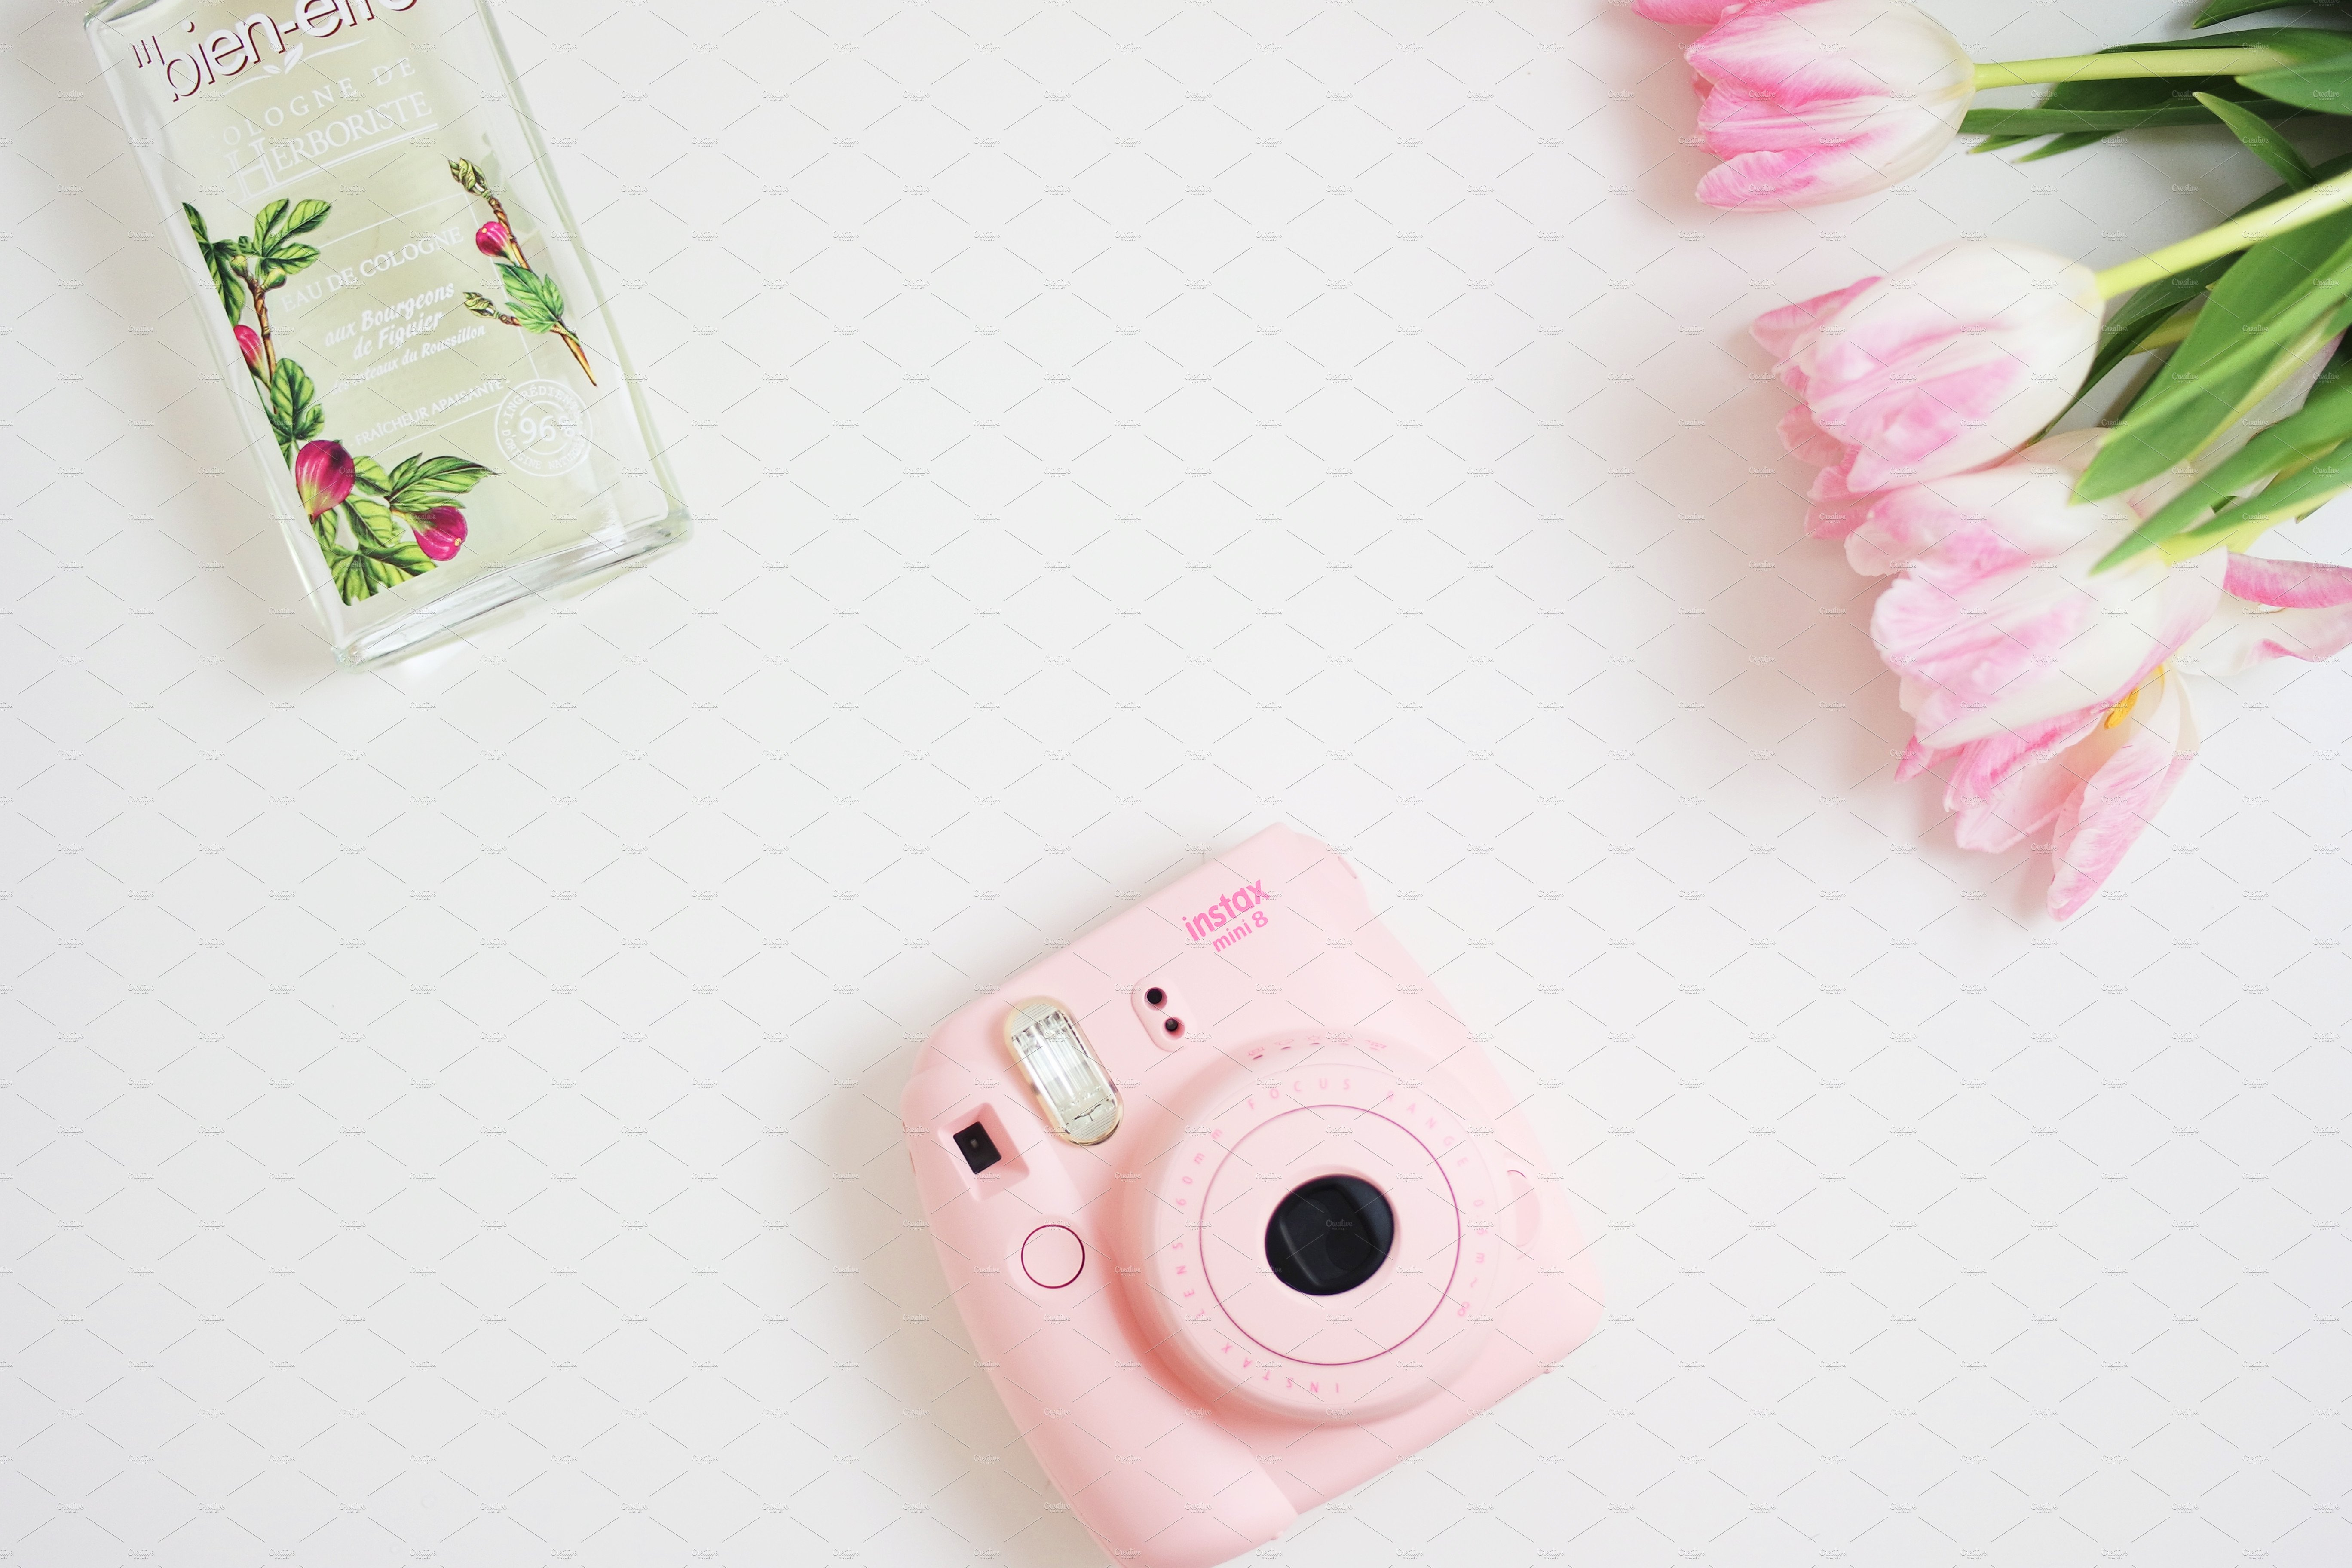 Desk Pink Instax Flowers Perfume Beauty Fashion Photos